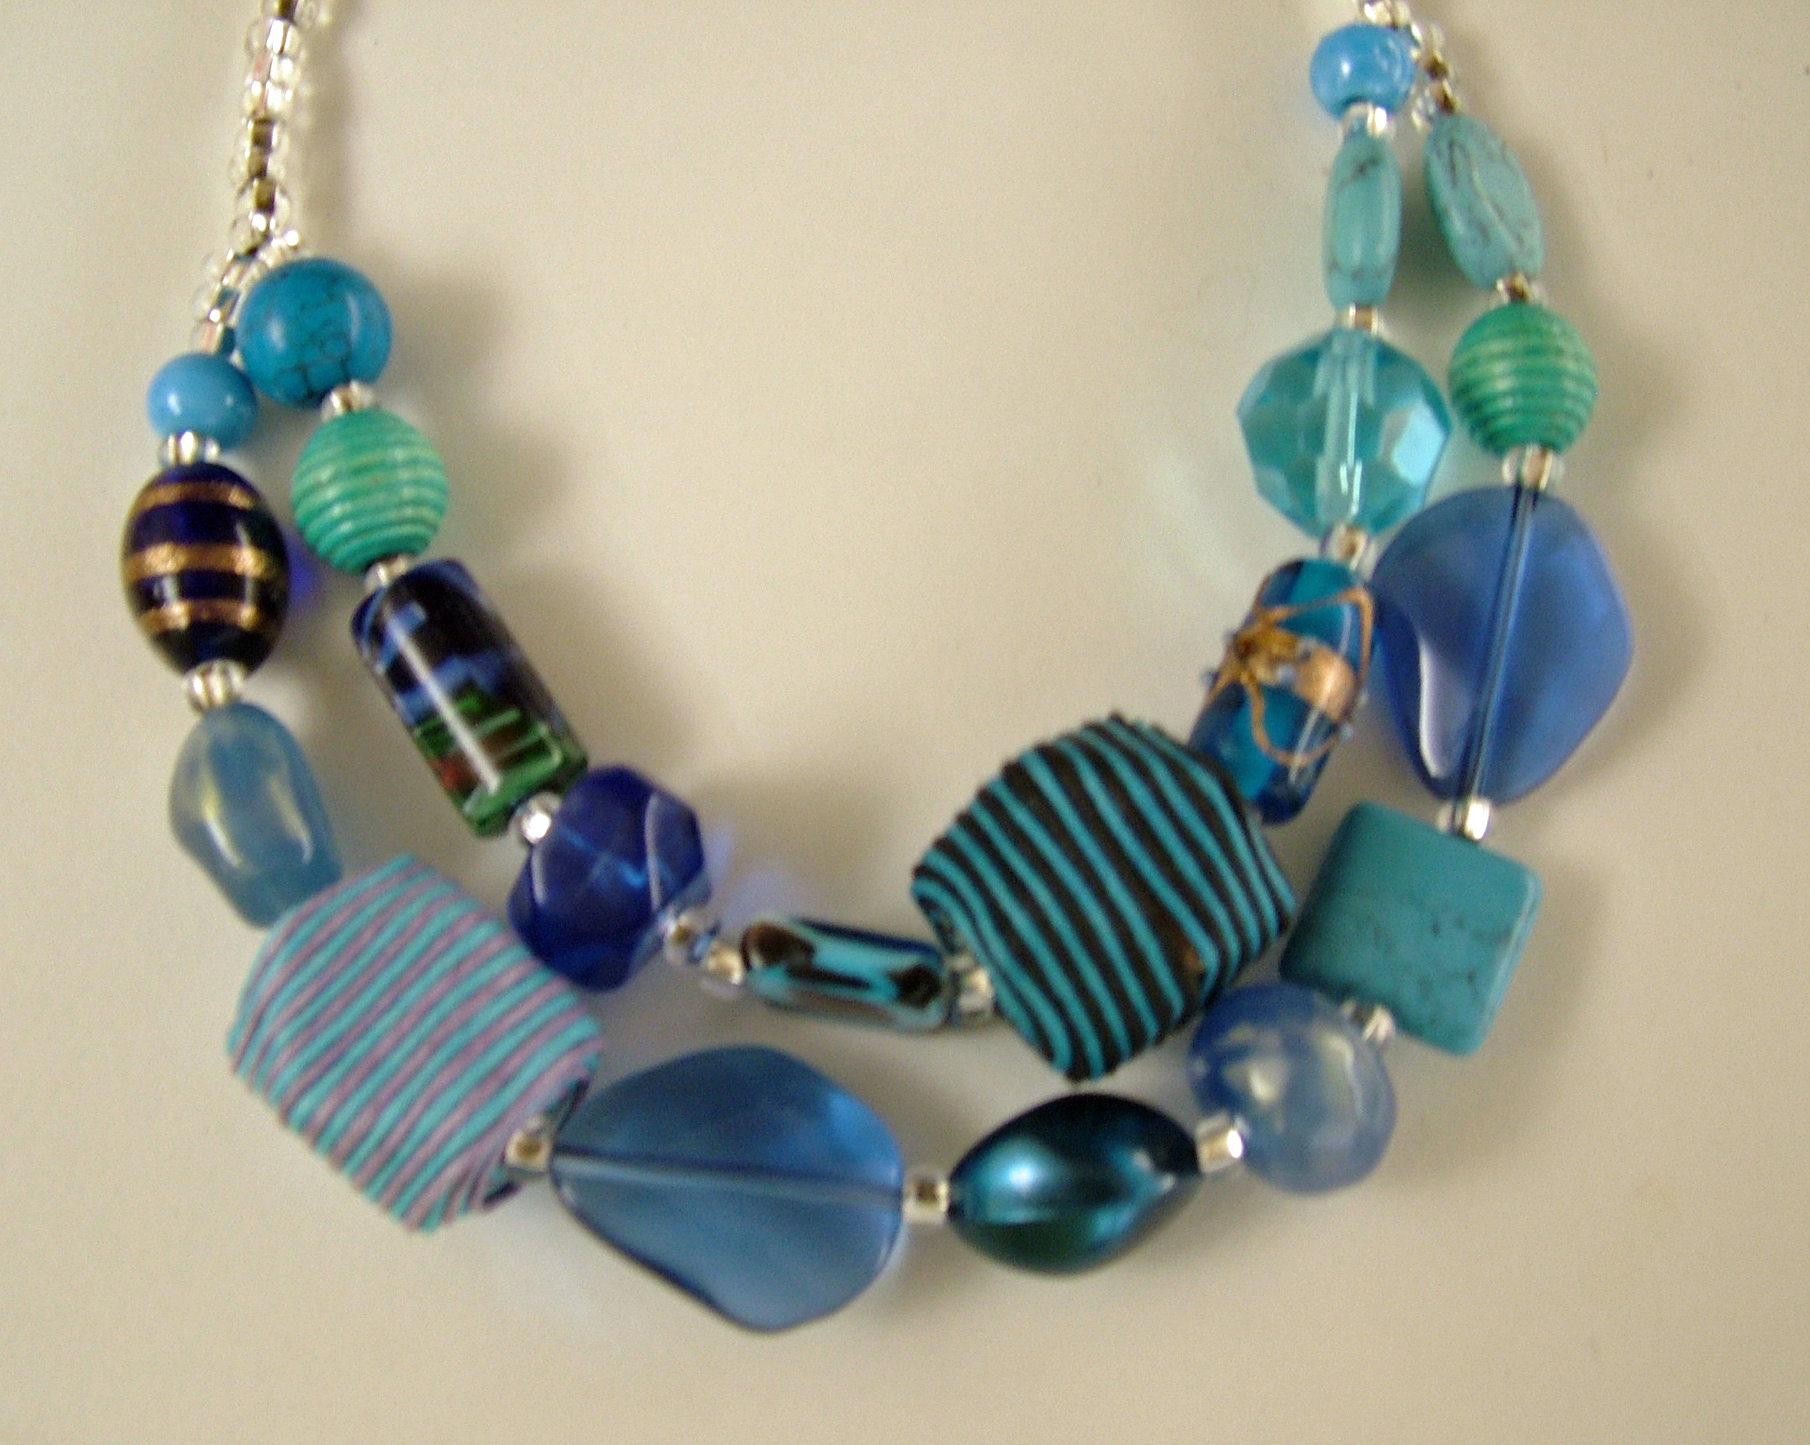 Two strand necklace with a collection of large blue glass